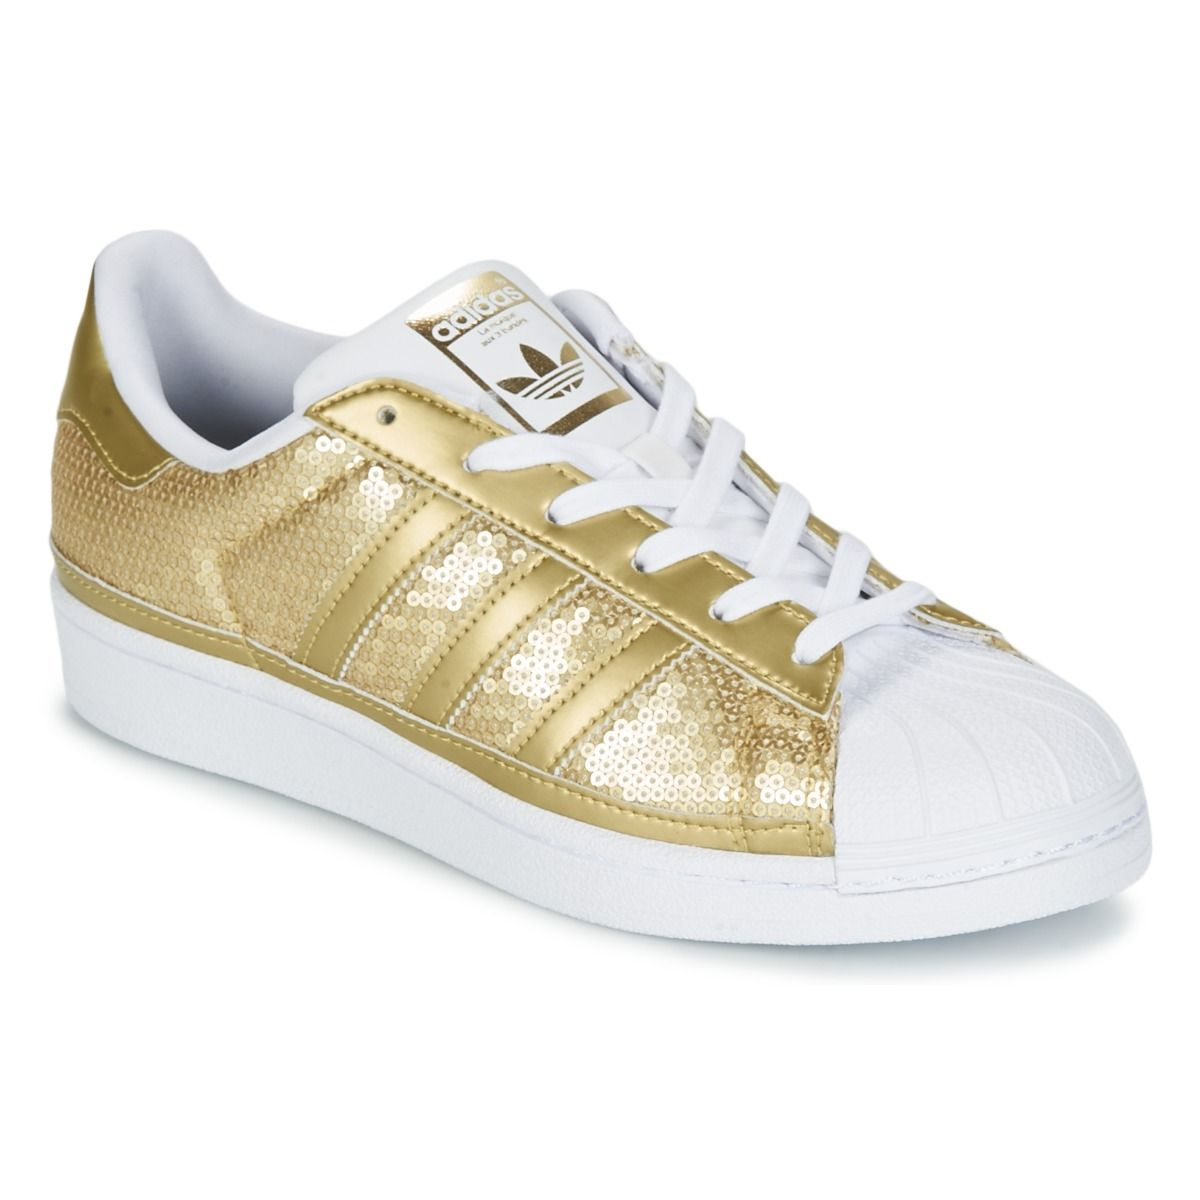 0963224bb08 Baskets basses adidas Originals SUPERSTAR W Or prix promo Baskets Femme  Spartoo 89.99 € TTC